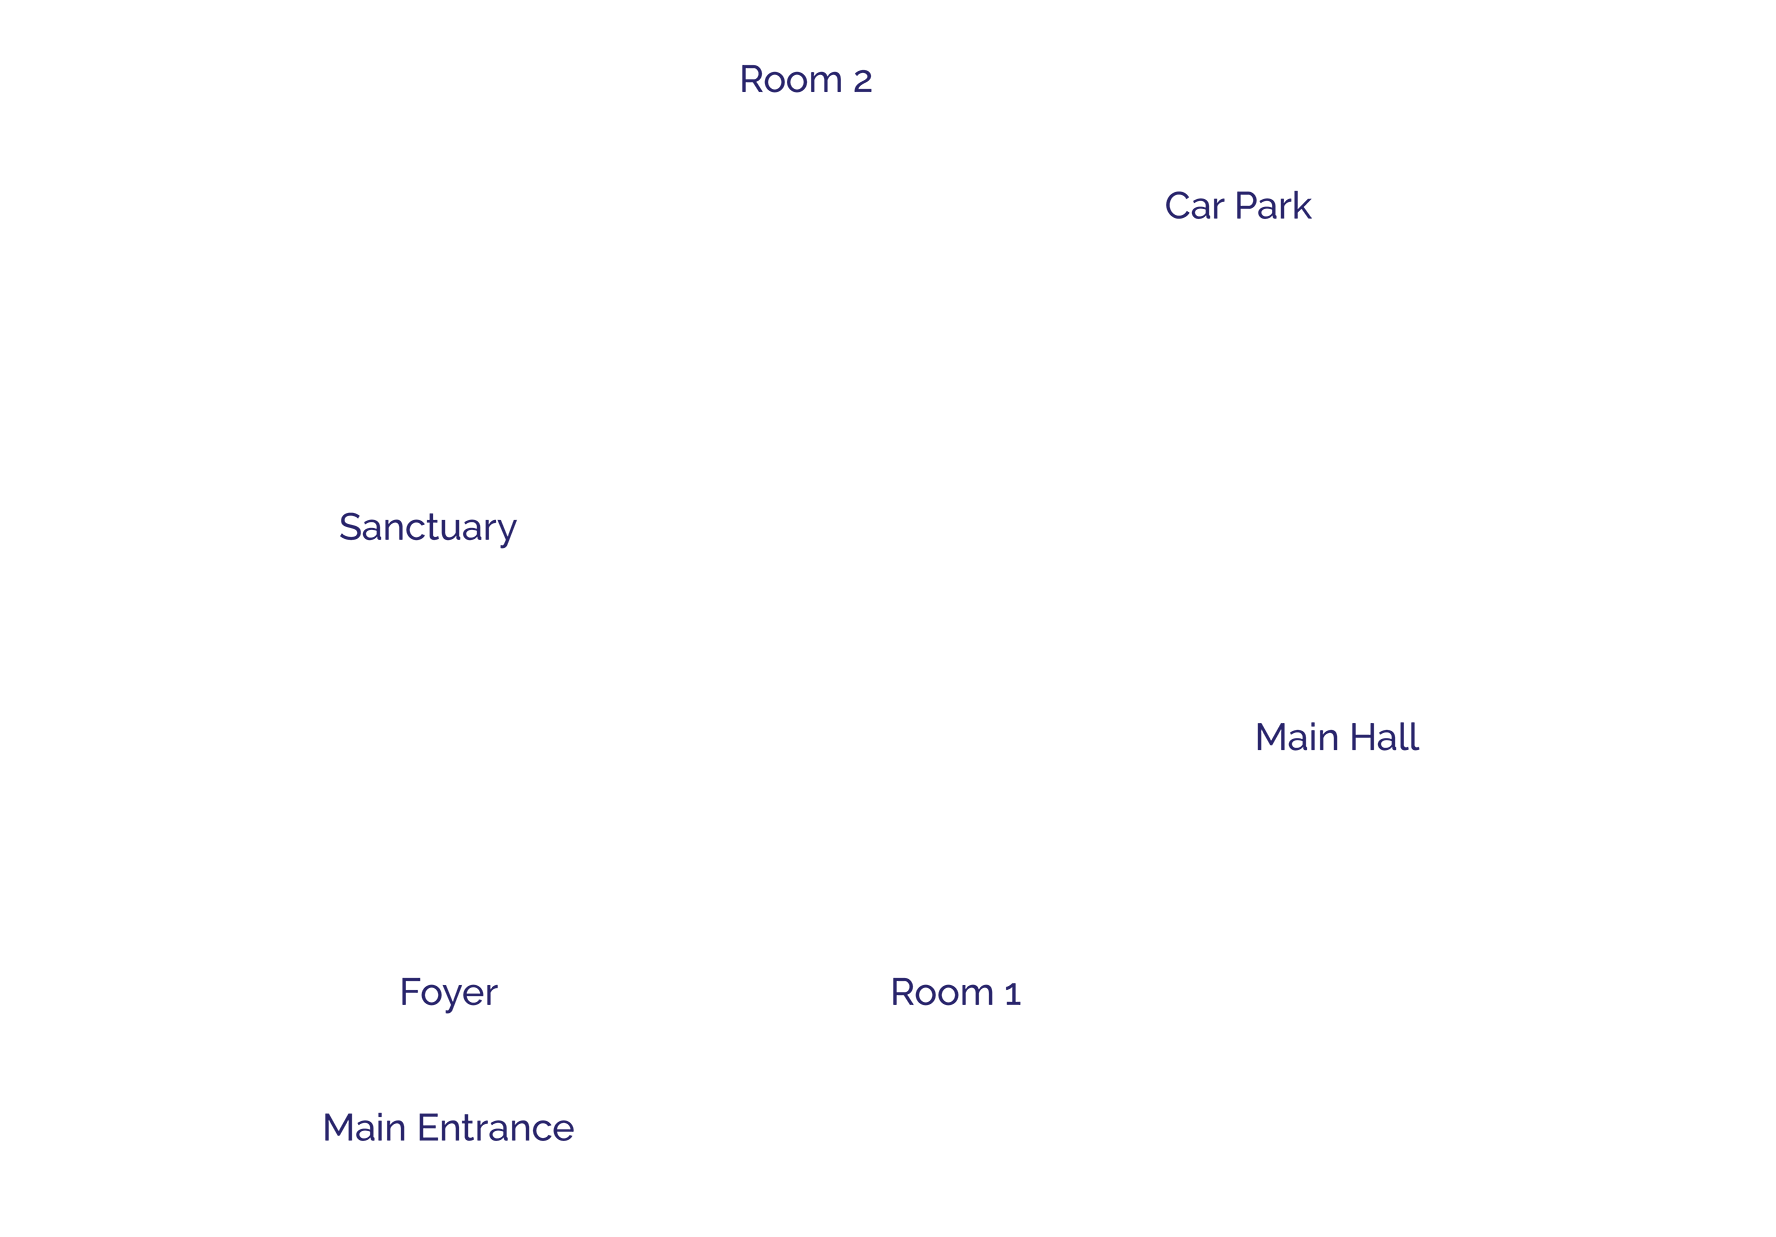 WCBC Floor Plan for website directions